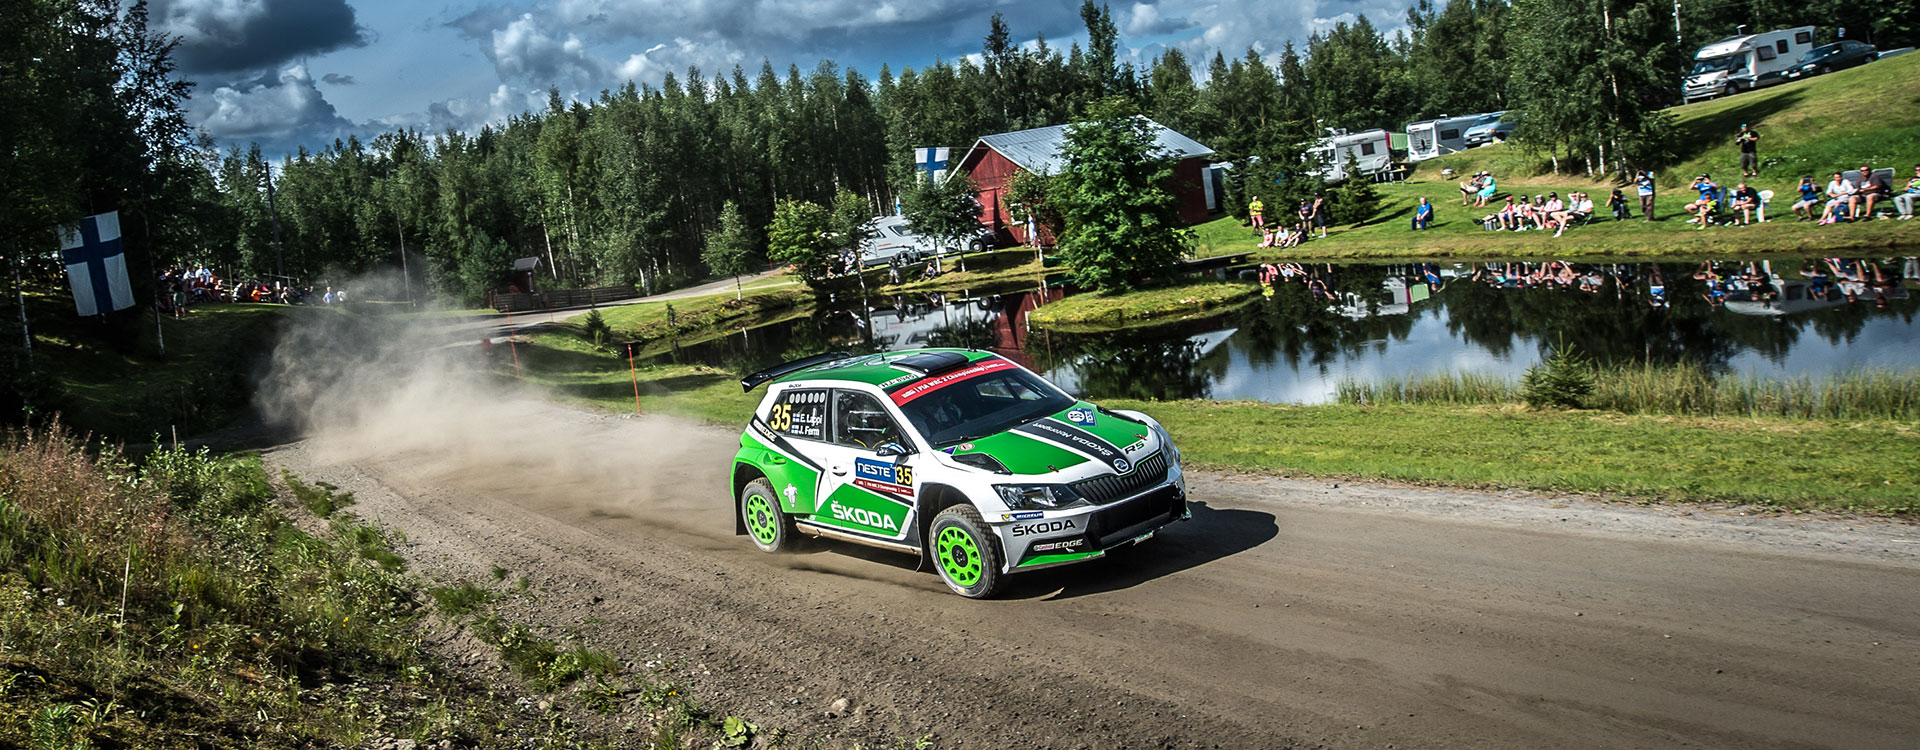 ŠKODA extends its lead at the Rally Finland